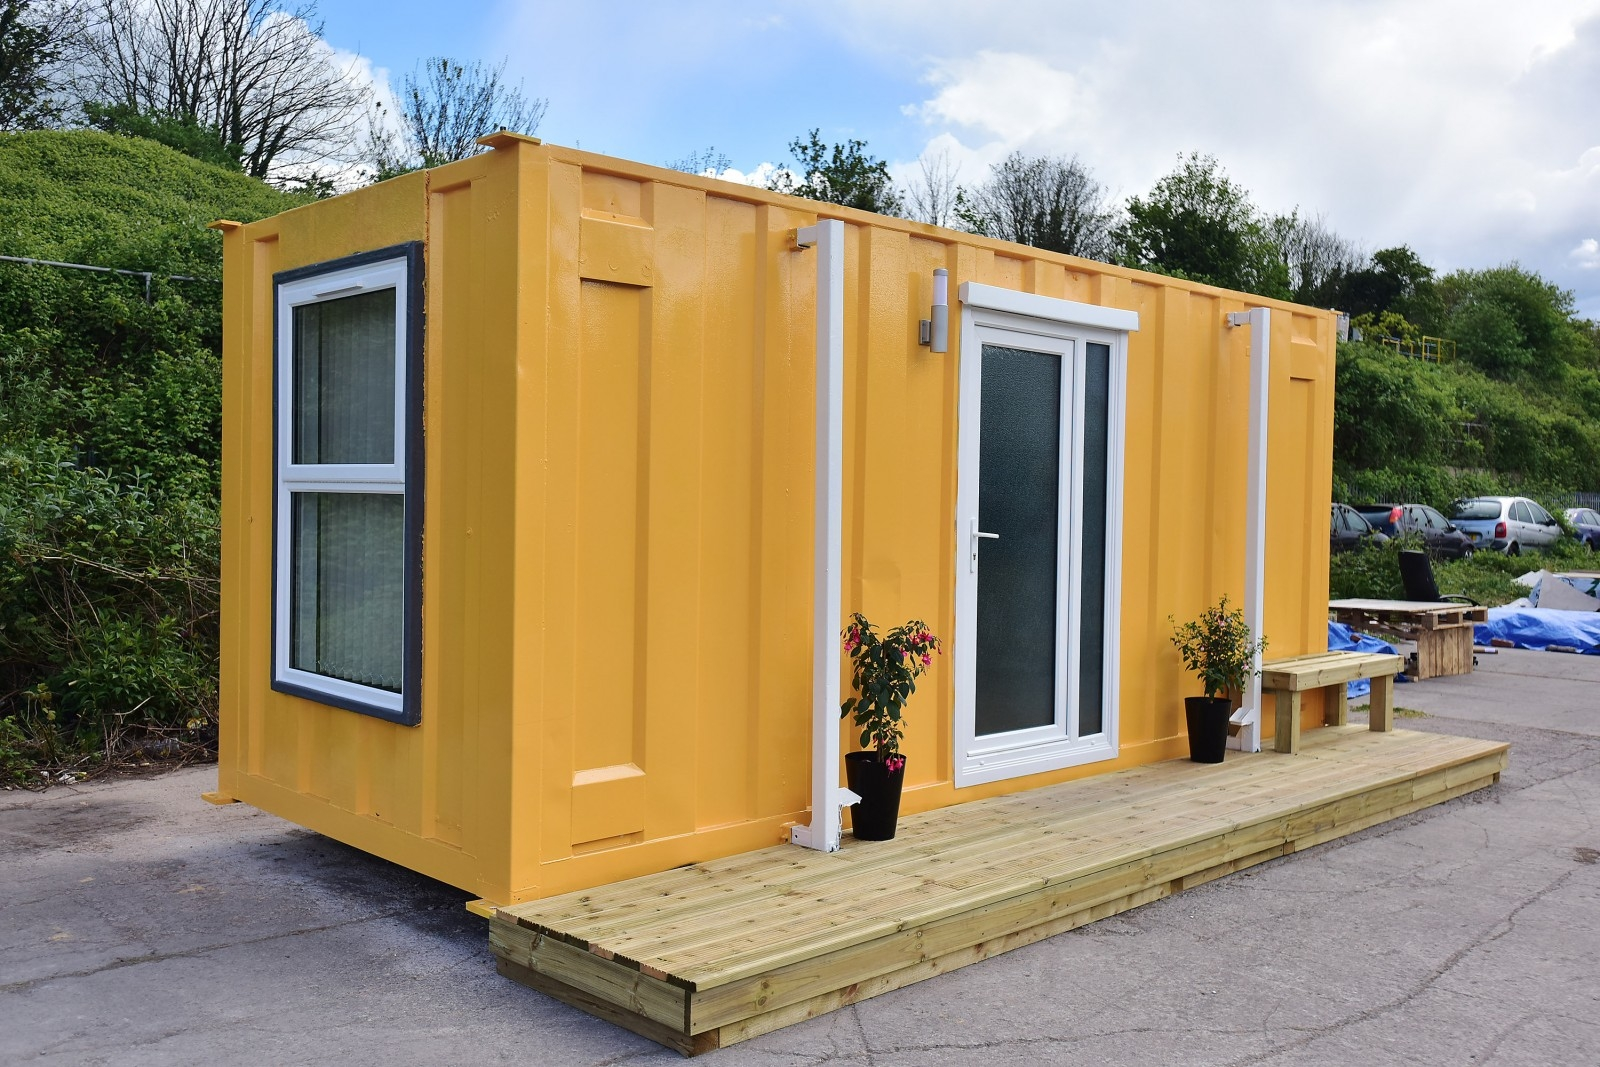 Shipping container converted to luxury home for rough sleepers real fix - Shipping containers converted into homes ...